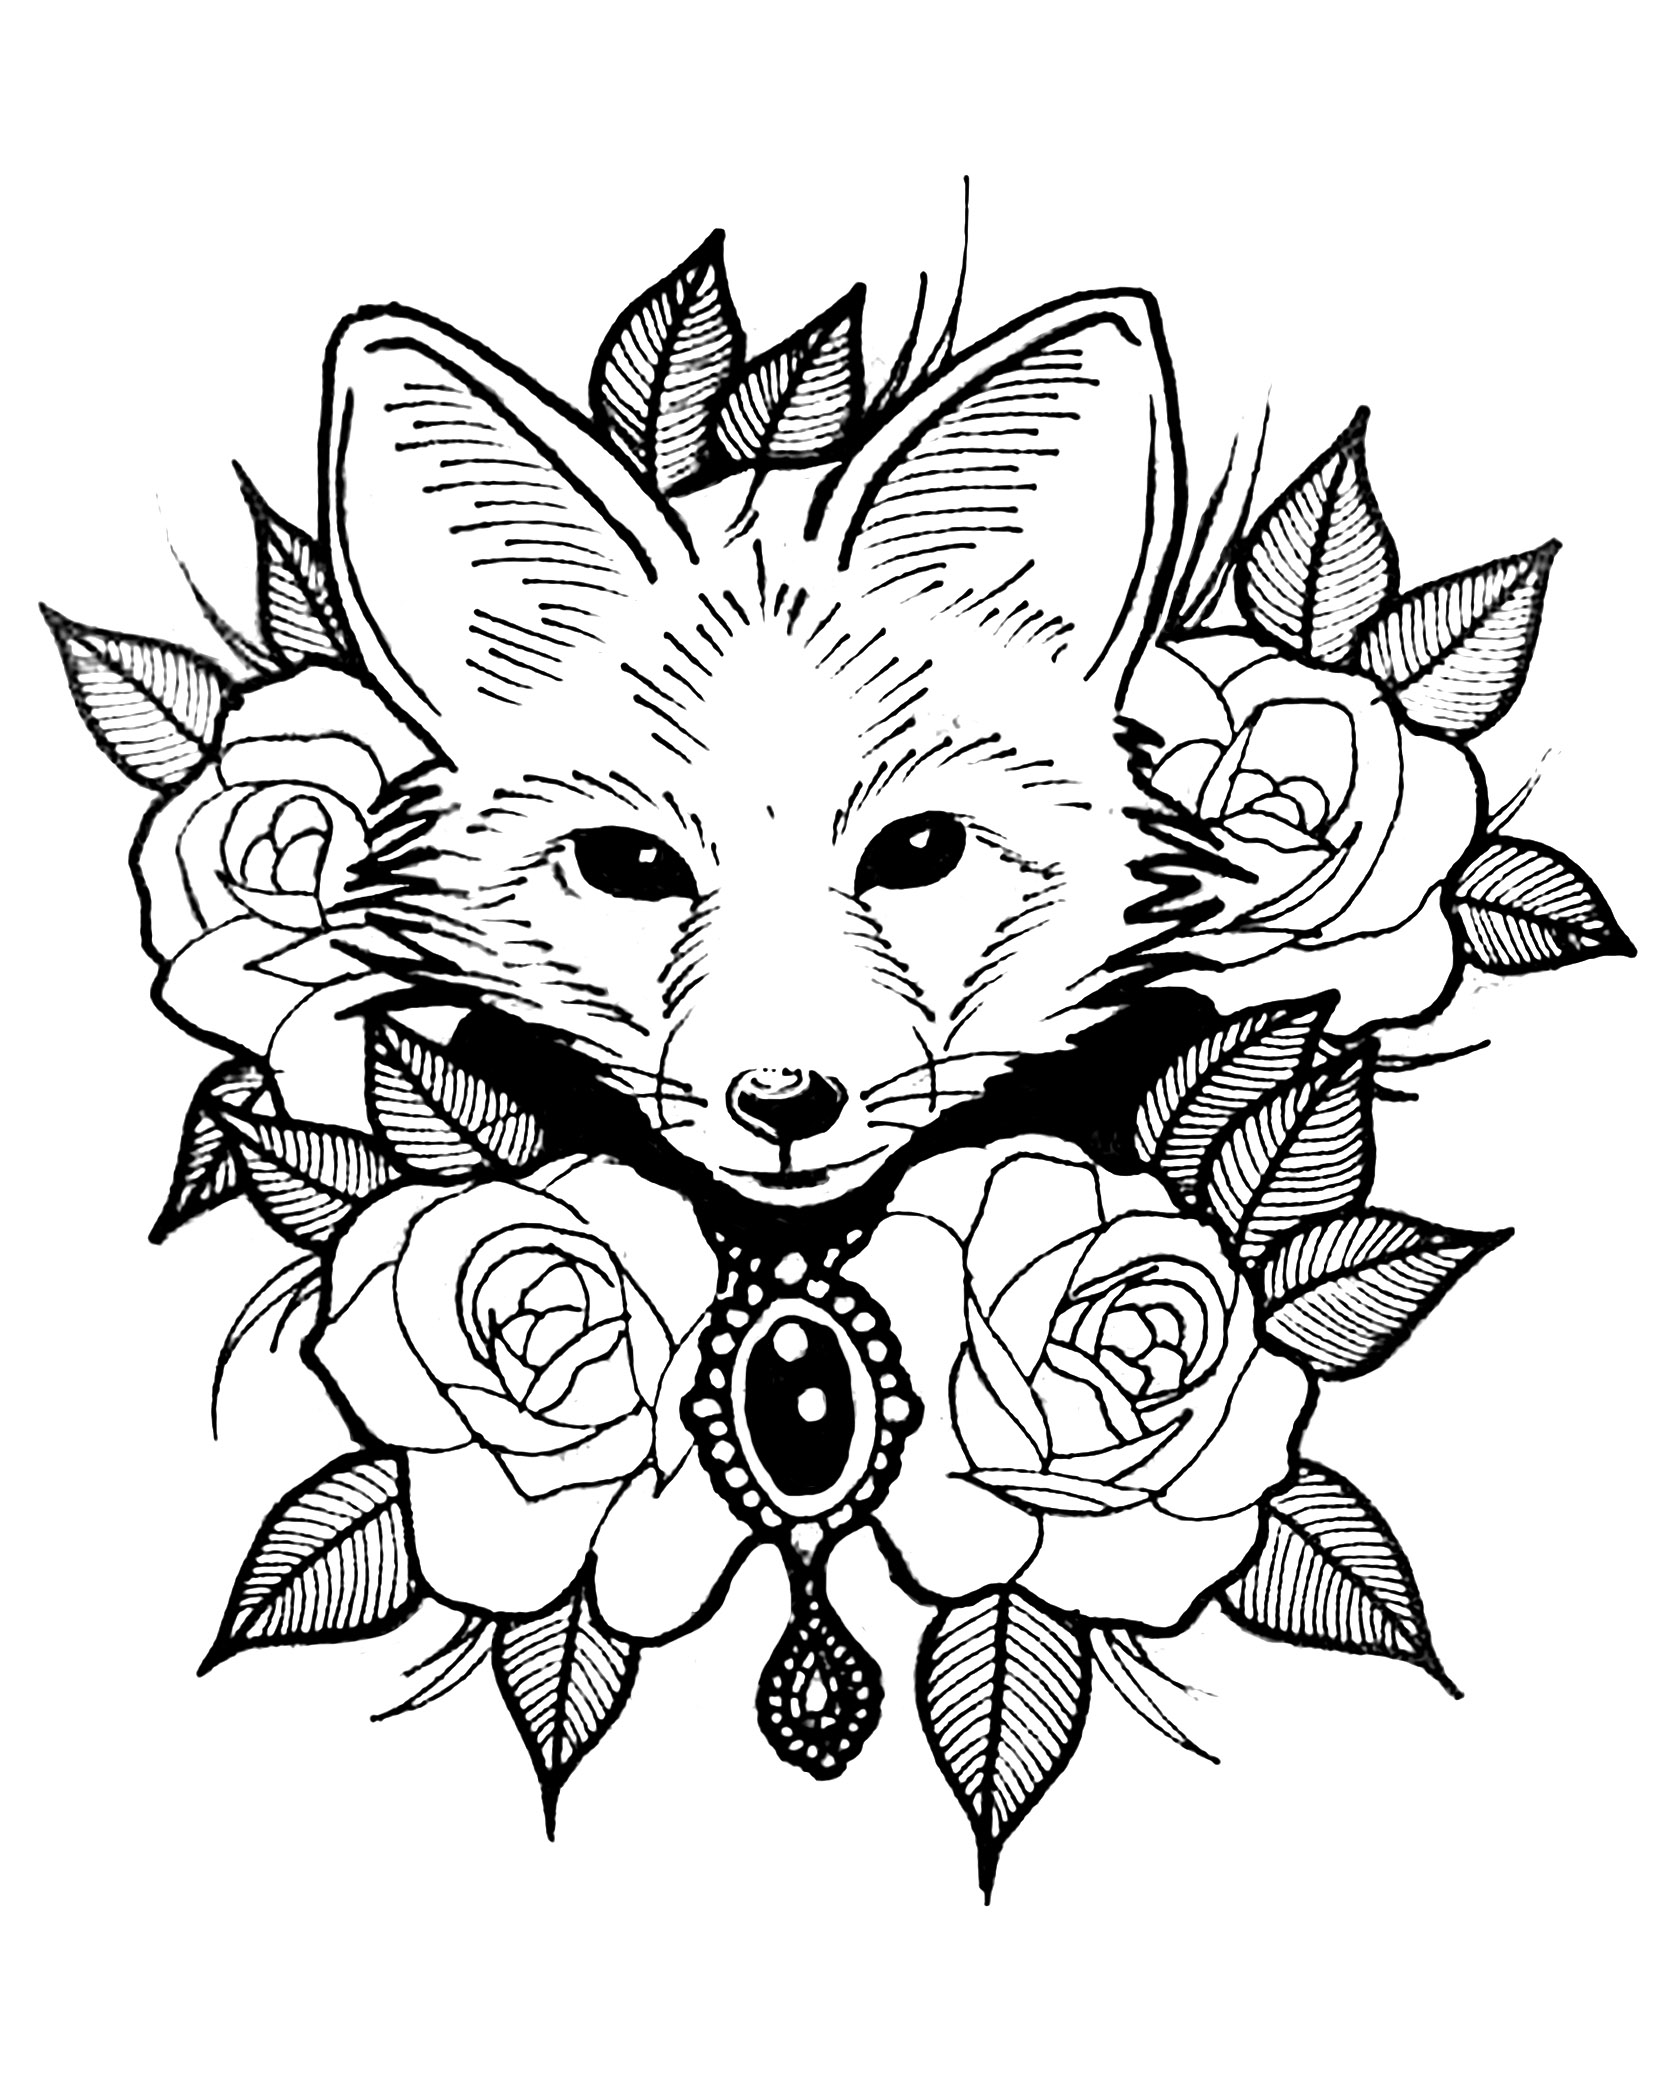 Coloring page with the head of a fox in a center of roses and beautiful leaves